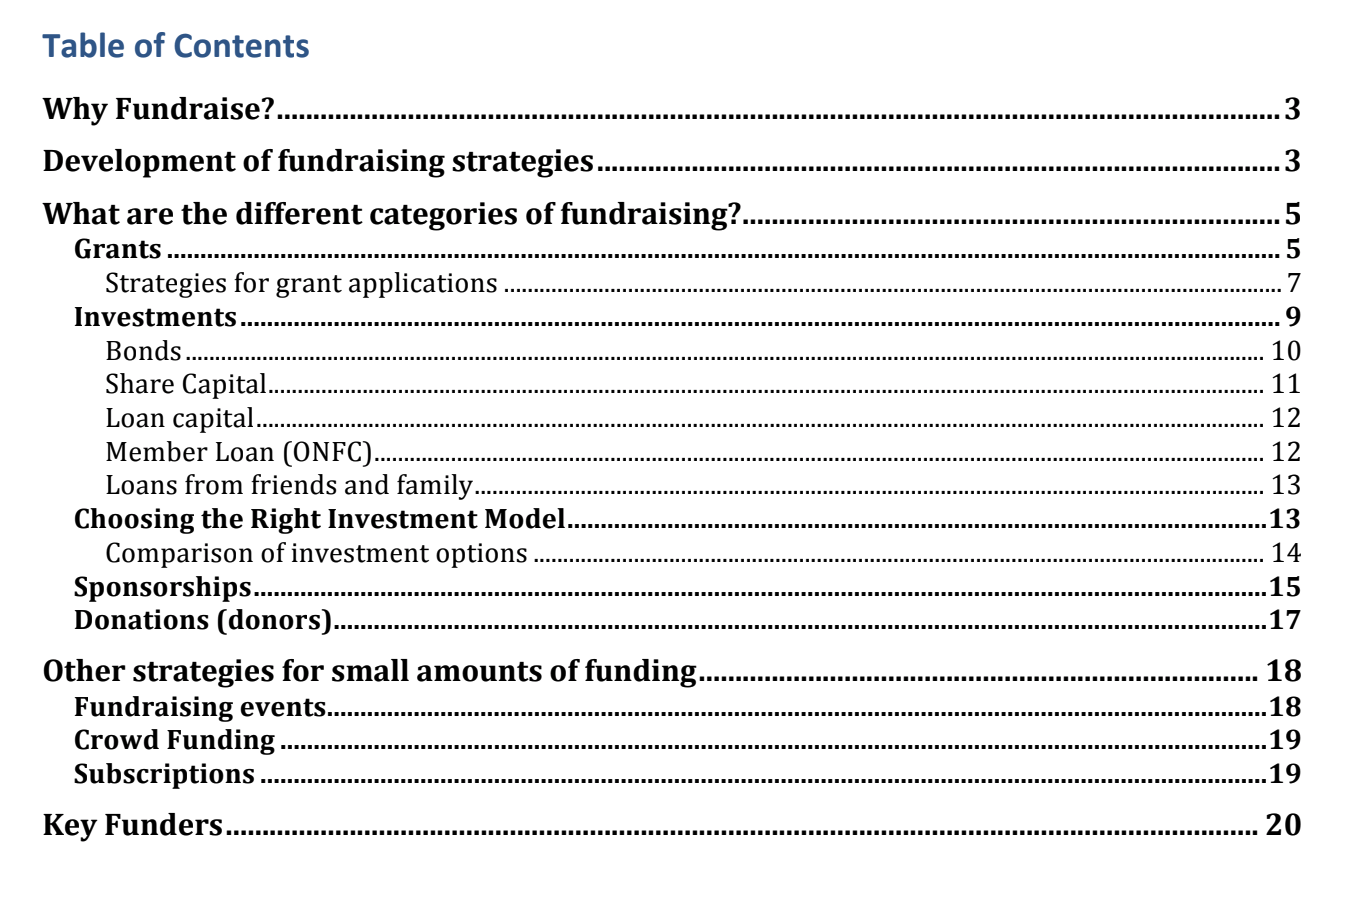 This fundraising toolkit was designed for co-ops in the food and farm sector, but contains general information about many of the options listed above. In many cases, the material is applicable to any structure. C lick to download this PDF .